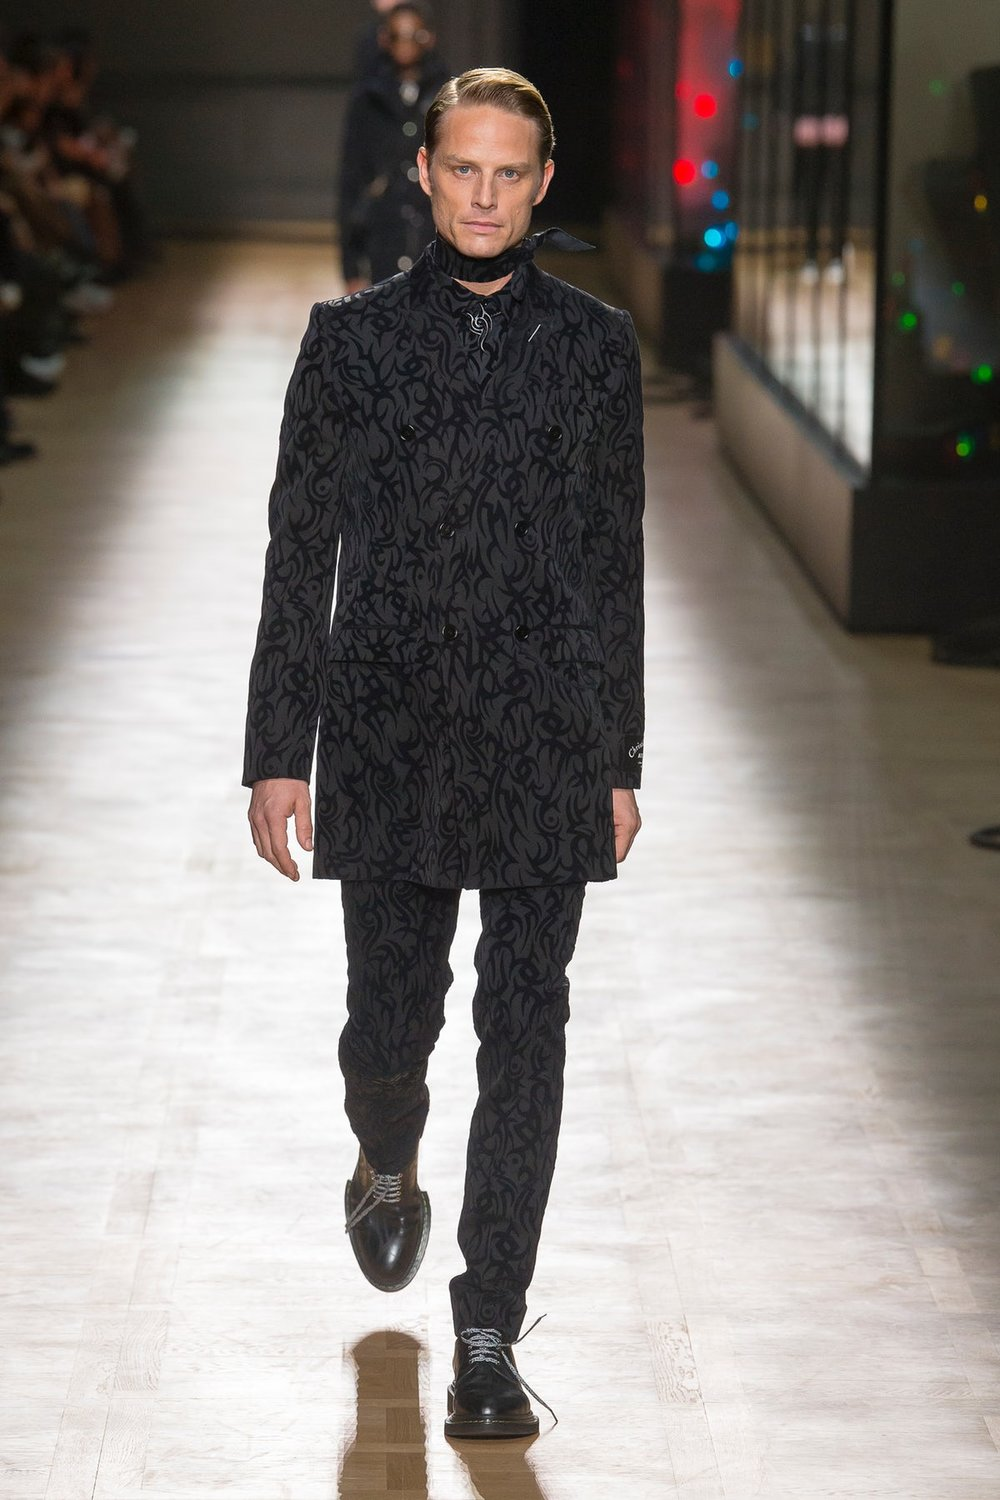 dior_homme_look_43_menswear_autumn_2018.jpeg